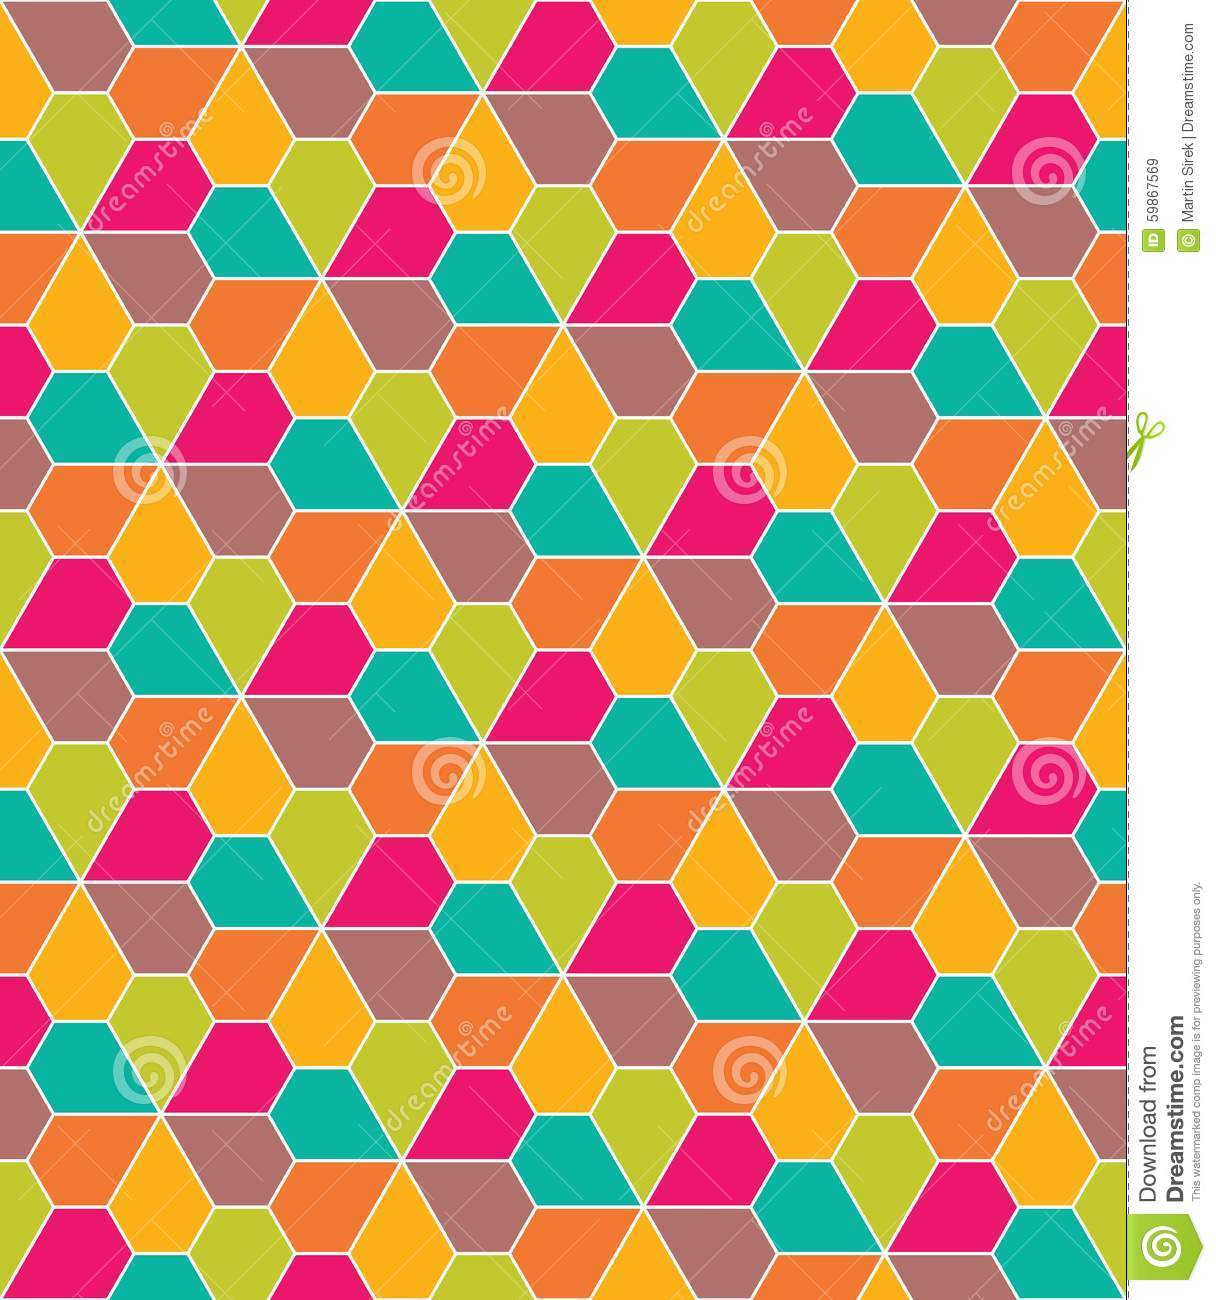 Pentagon Pattern Geometric Polygonal Posters A4 Colorfull